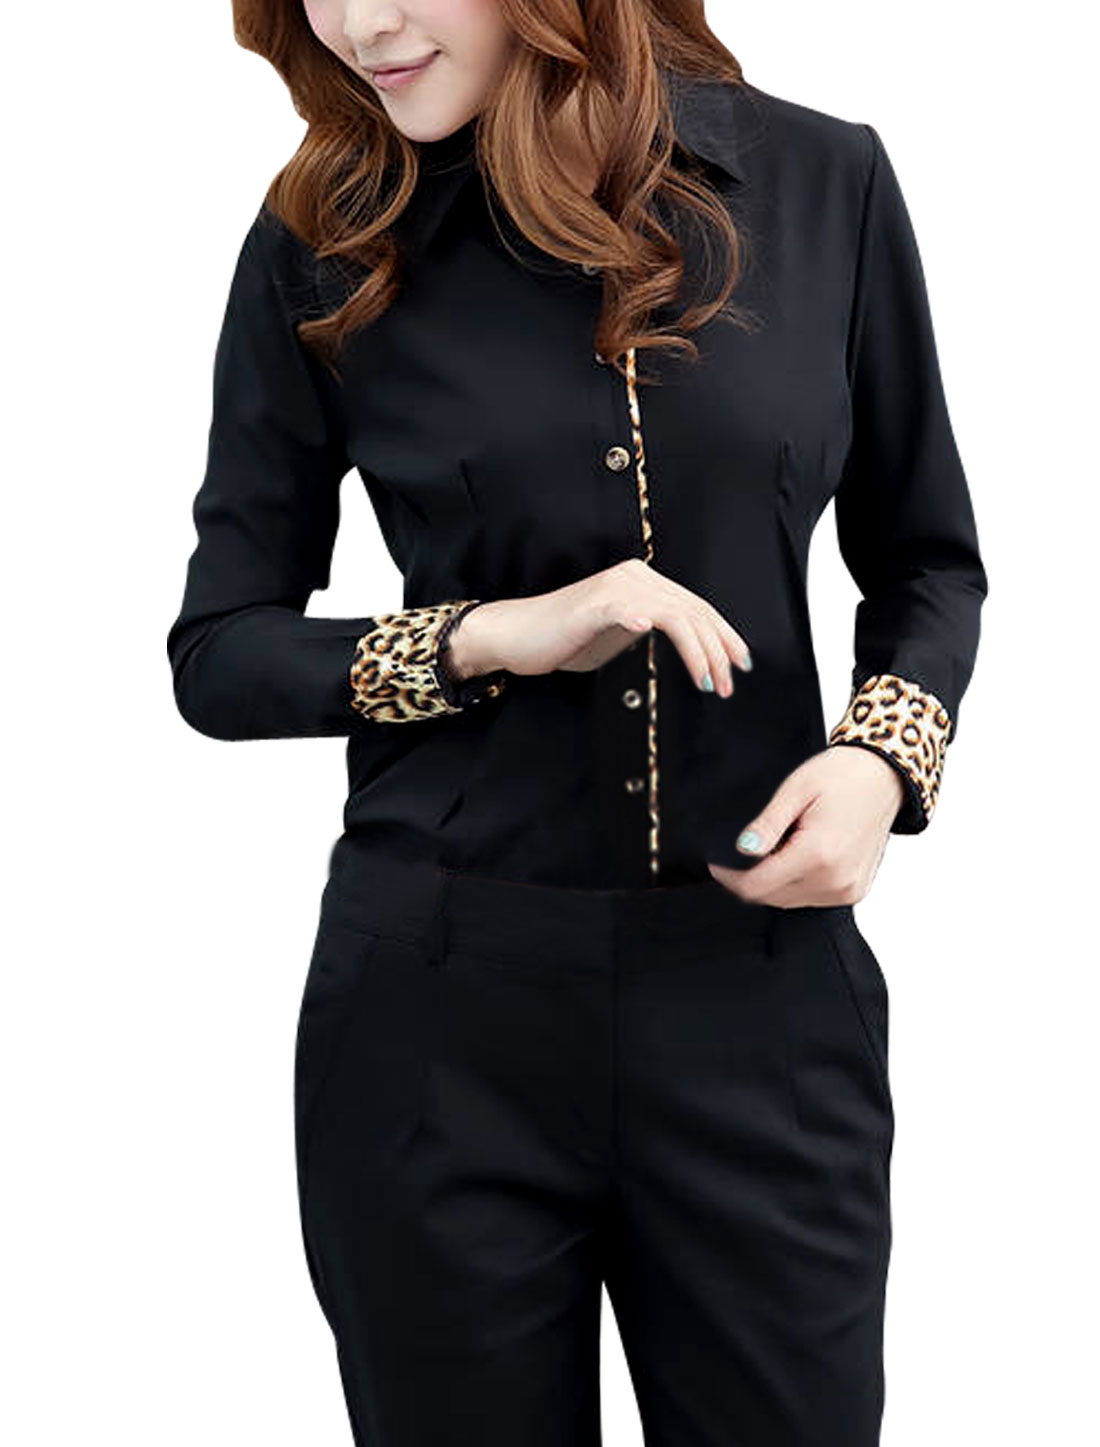 XS Black Point Collar Skinny Fit Style Button Closure Casual Shirt for Ladies